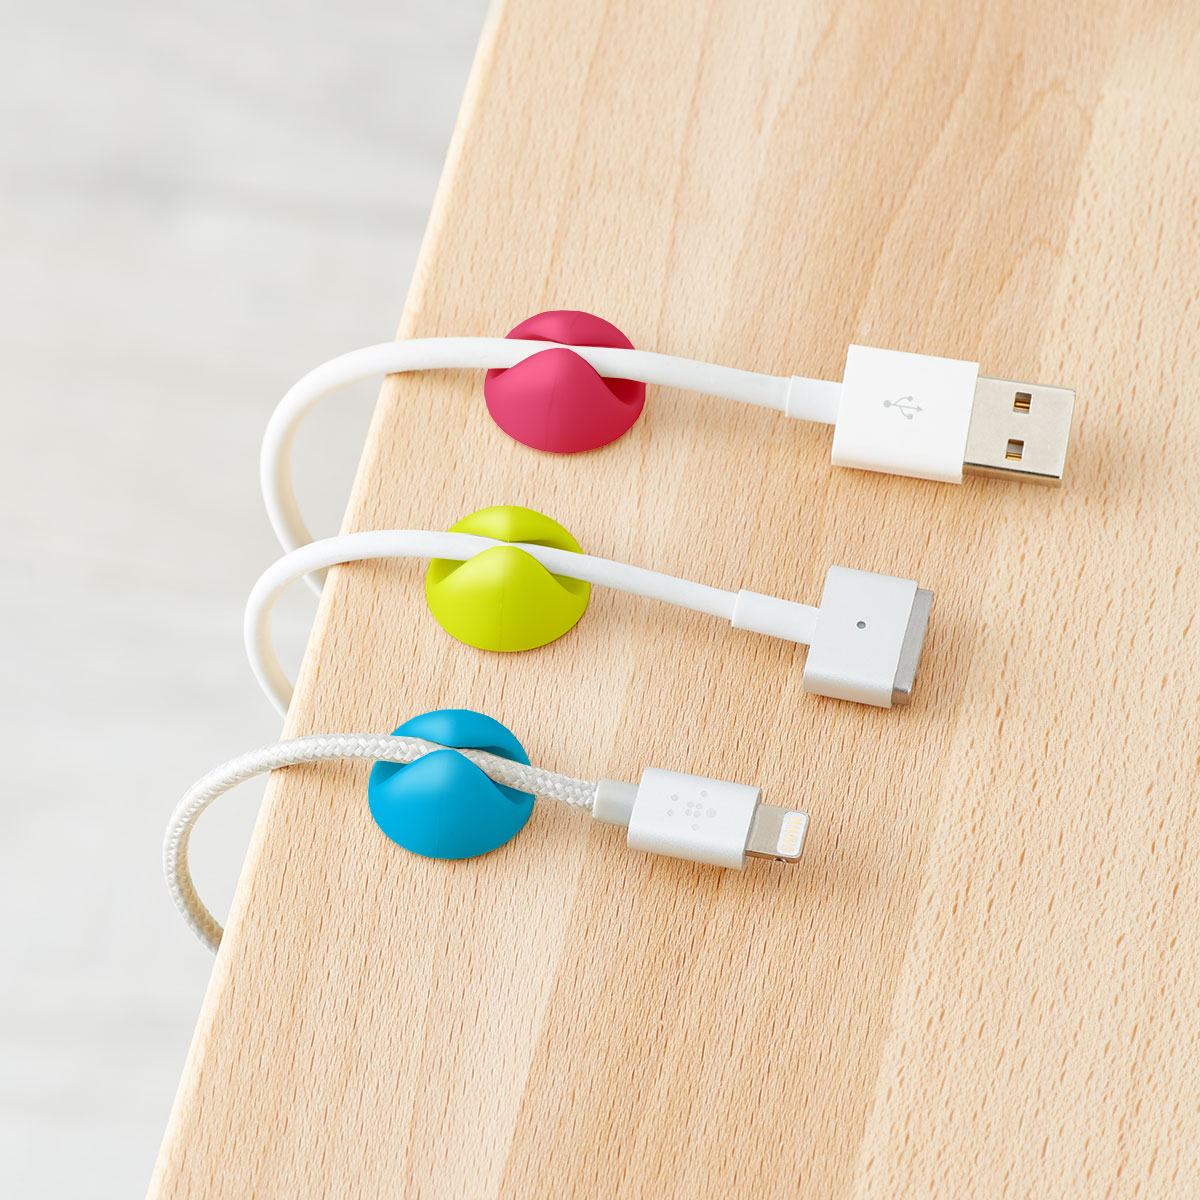 Bluelounge CableDrop Adhesive Cable Clips